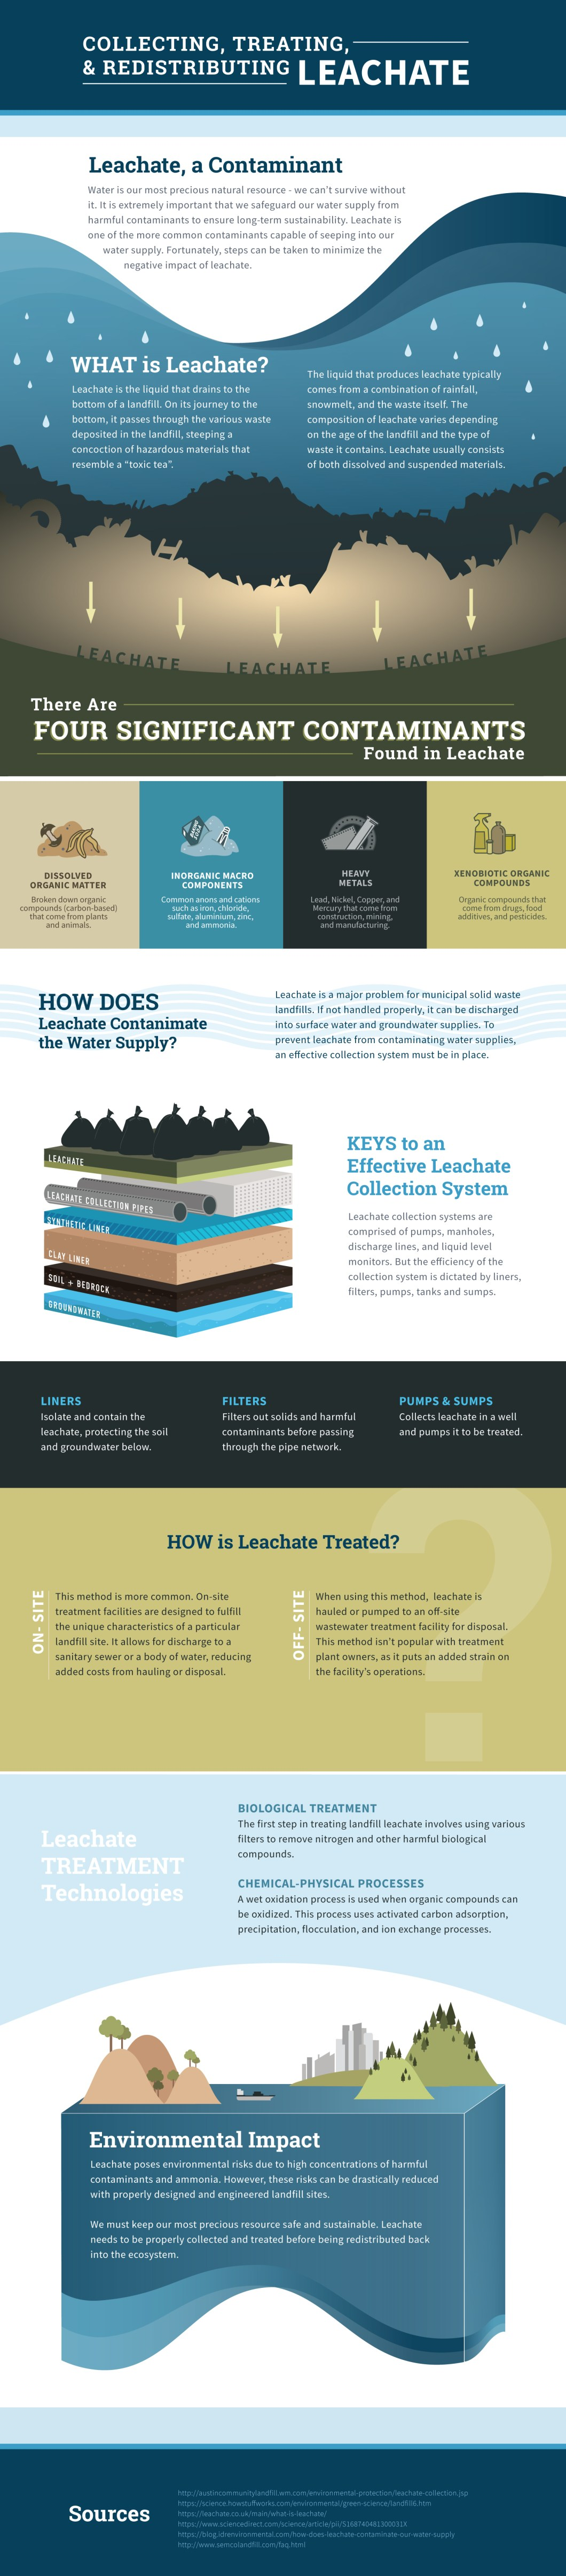 Collecting, Treating & Redistributing Leachate - Infographic